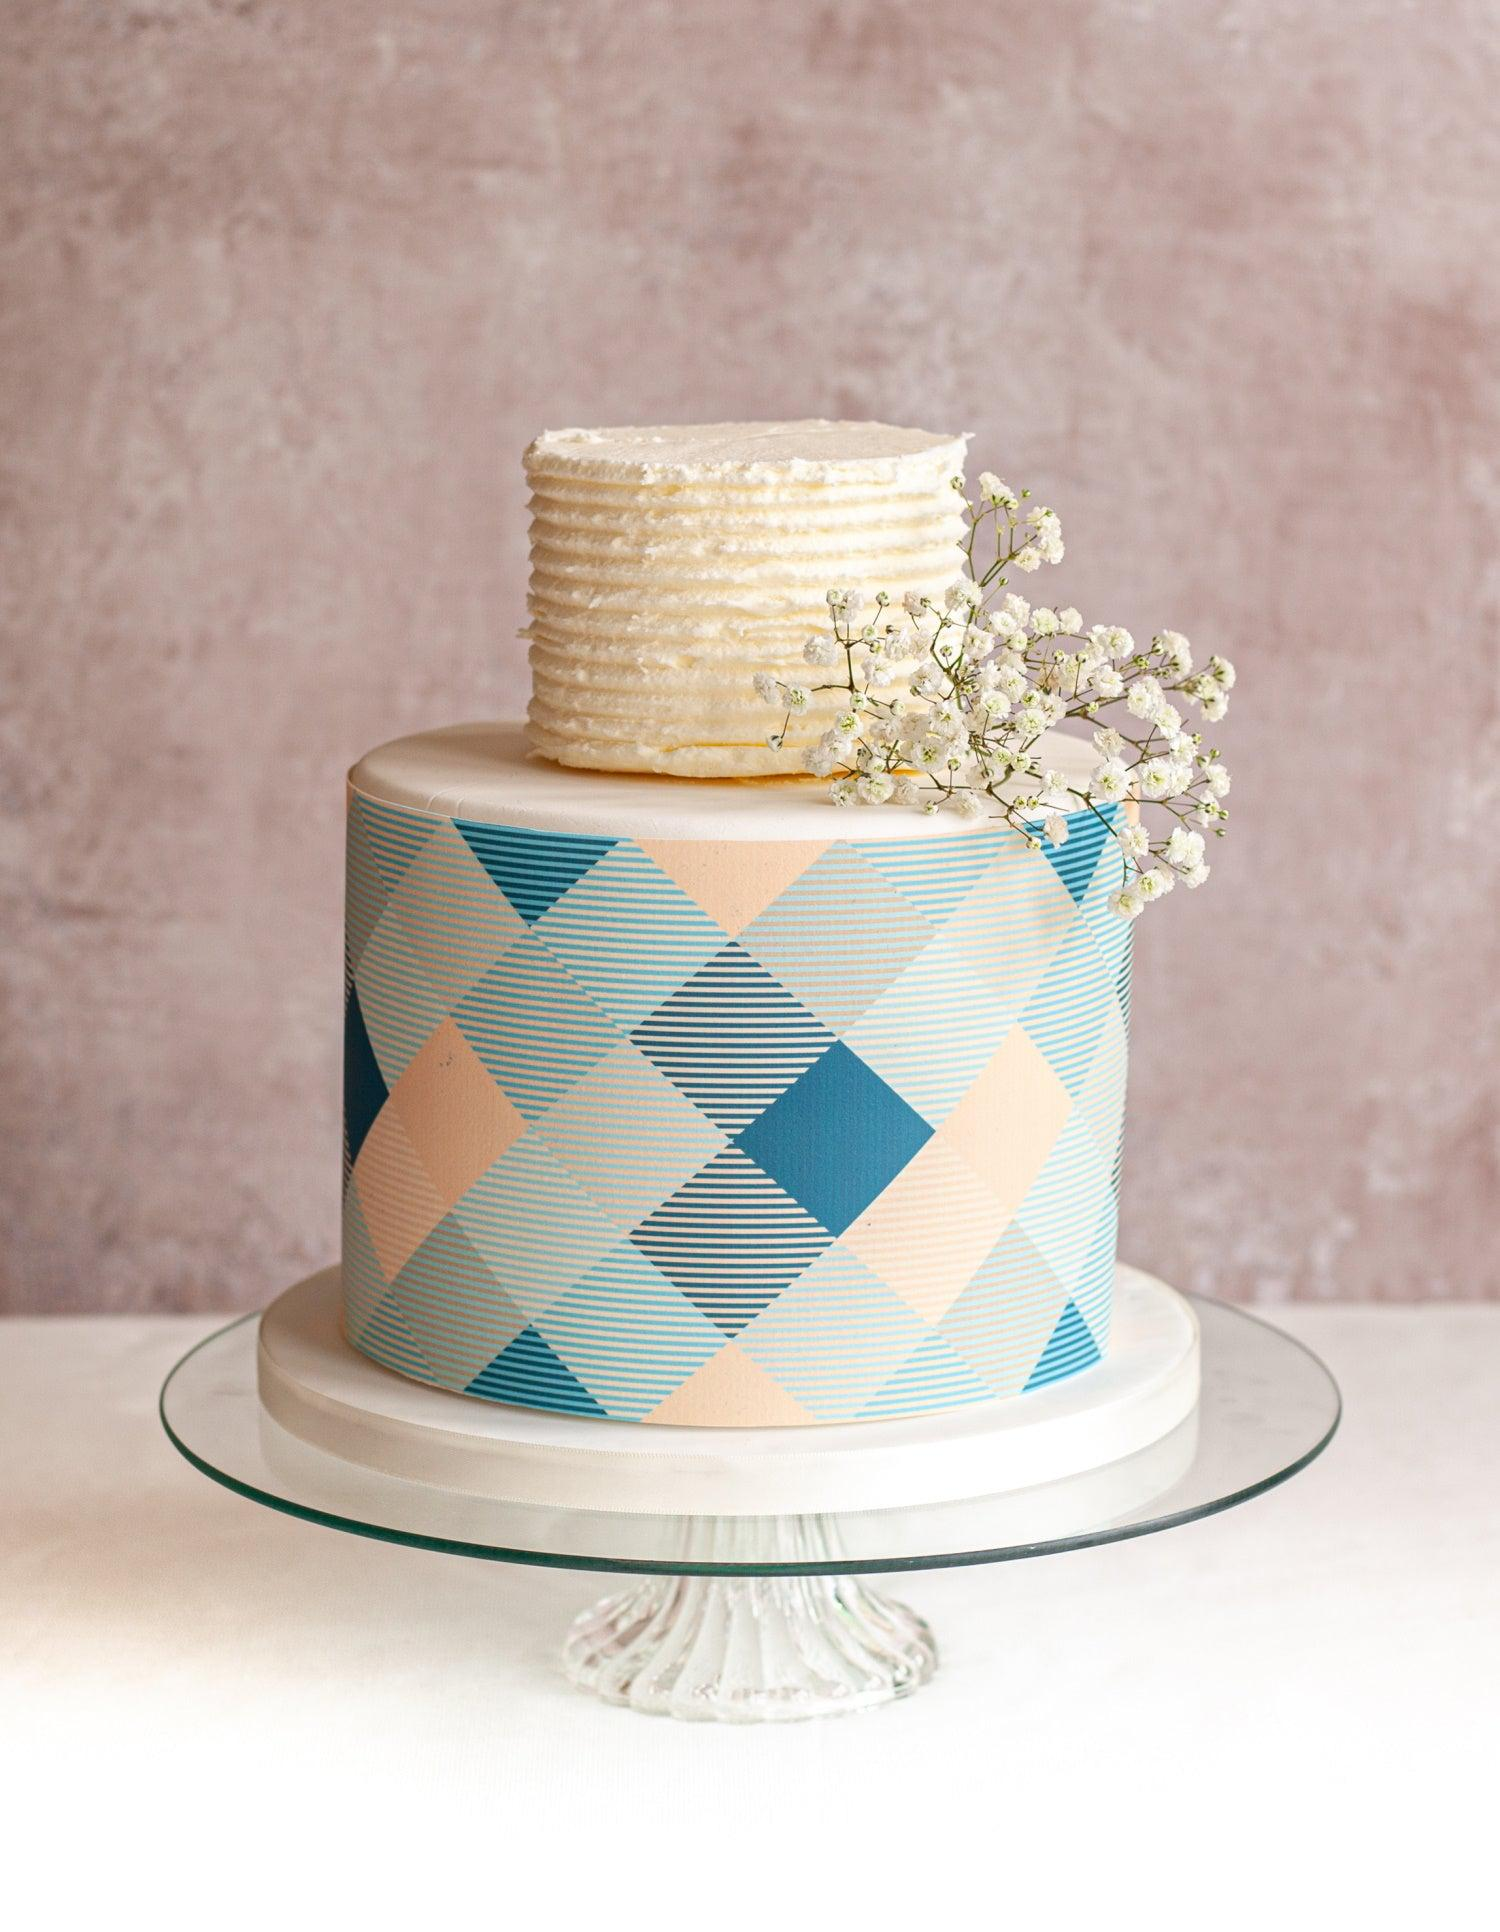 Two tier cake with blue and peach check icing cake wrap around